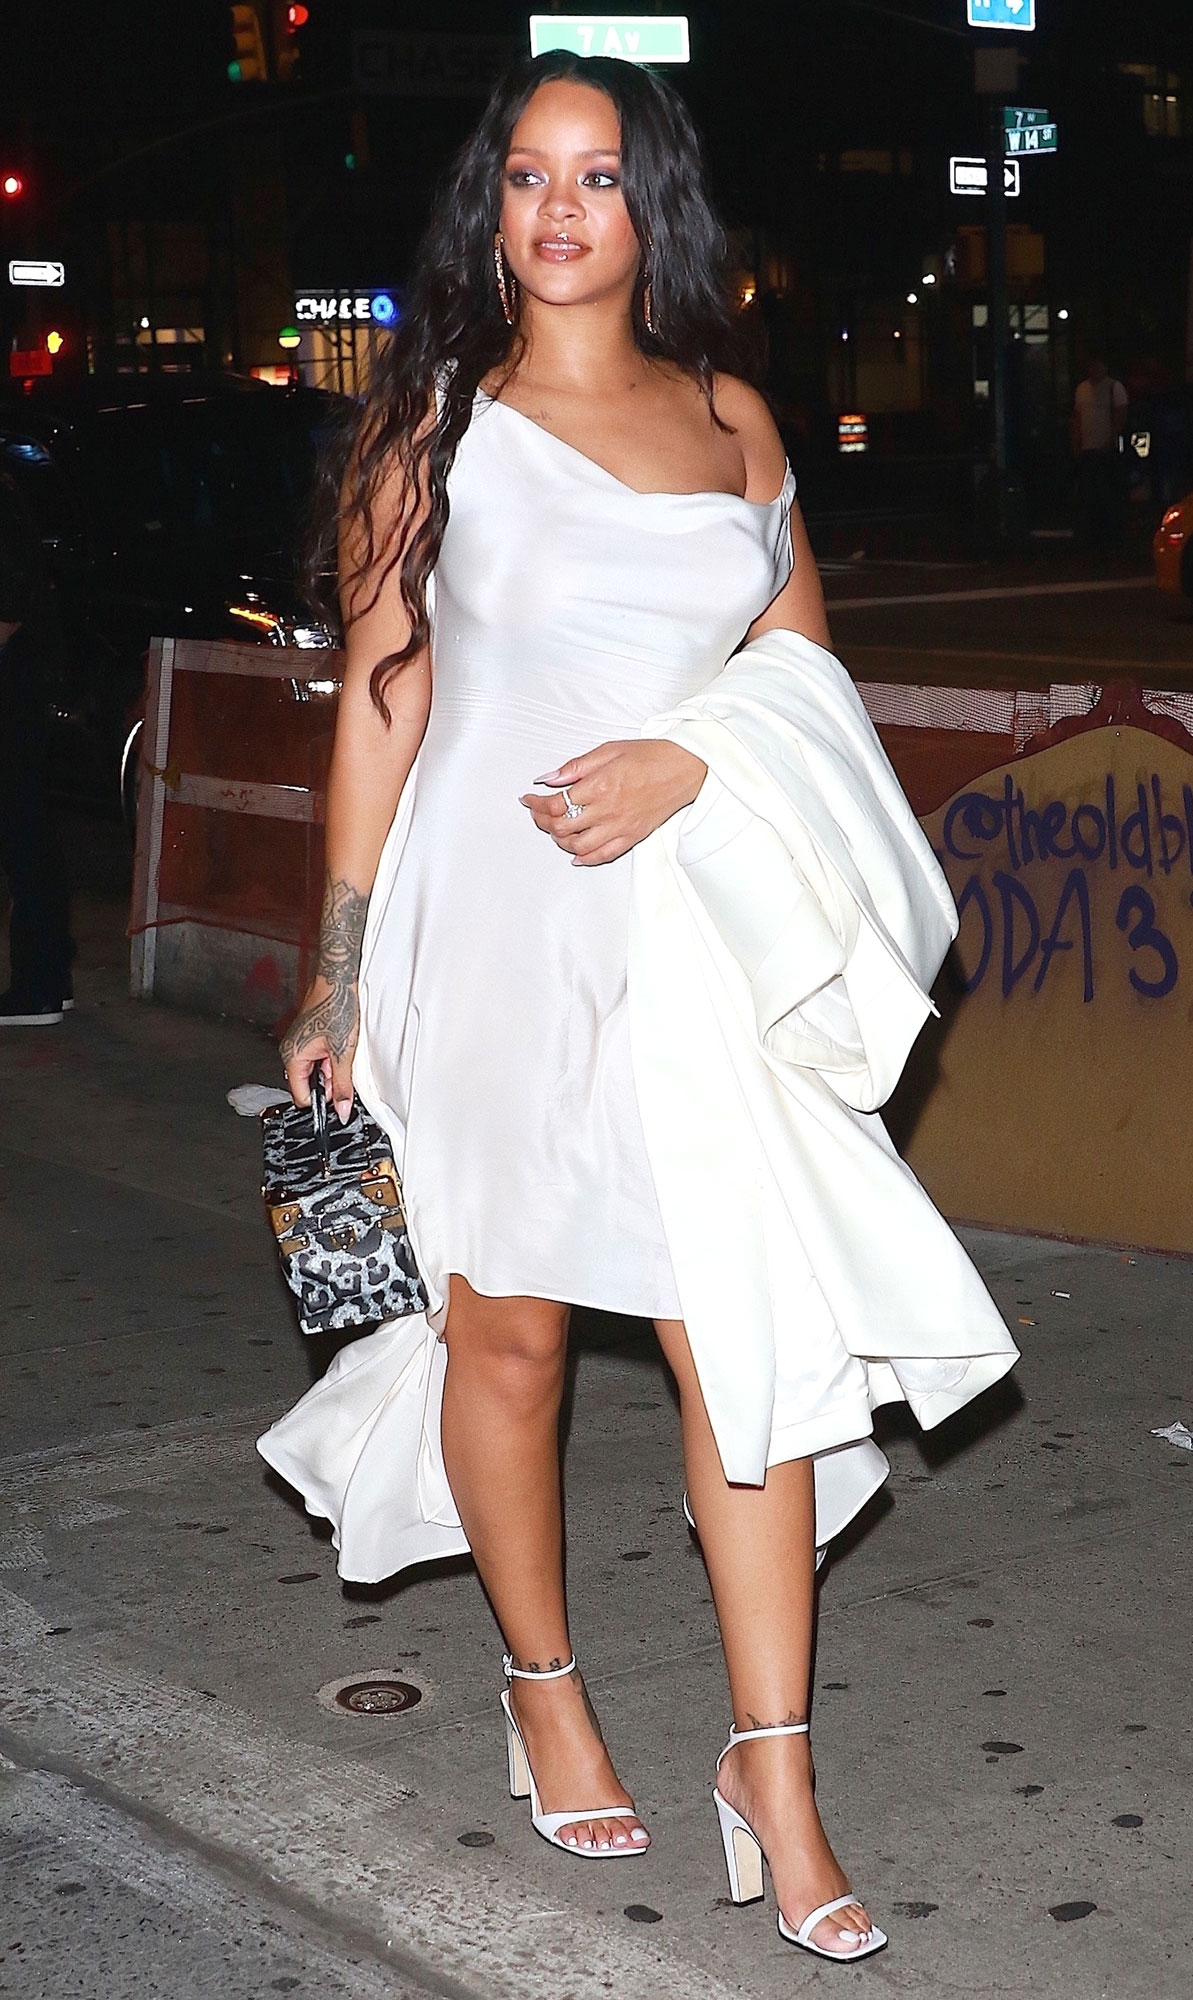 Rihanna looks angelic in all white as she leaves her Diamond Ball afterparty at 1OAK